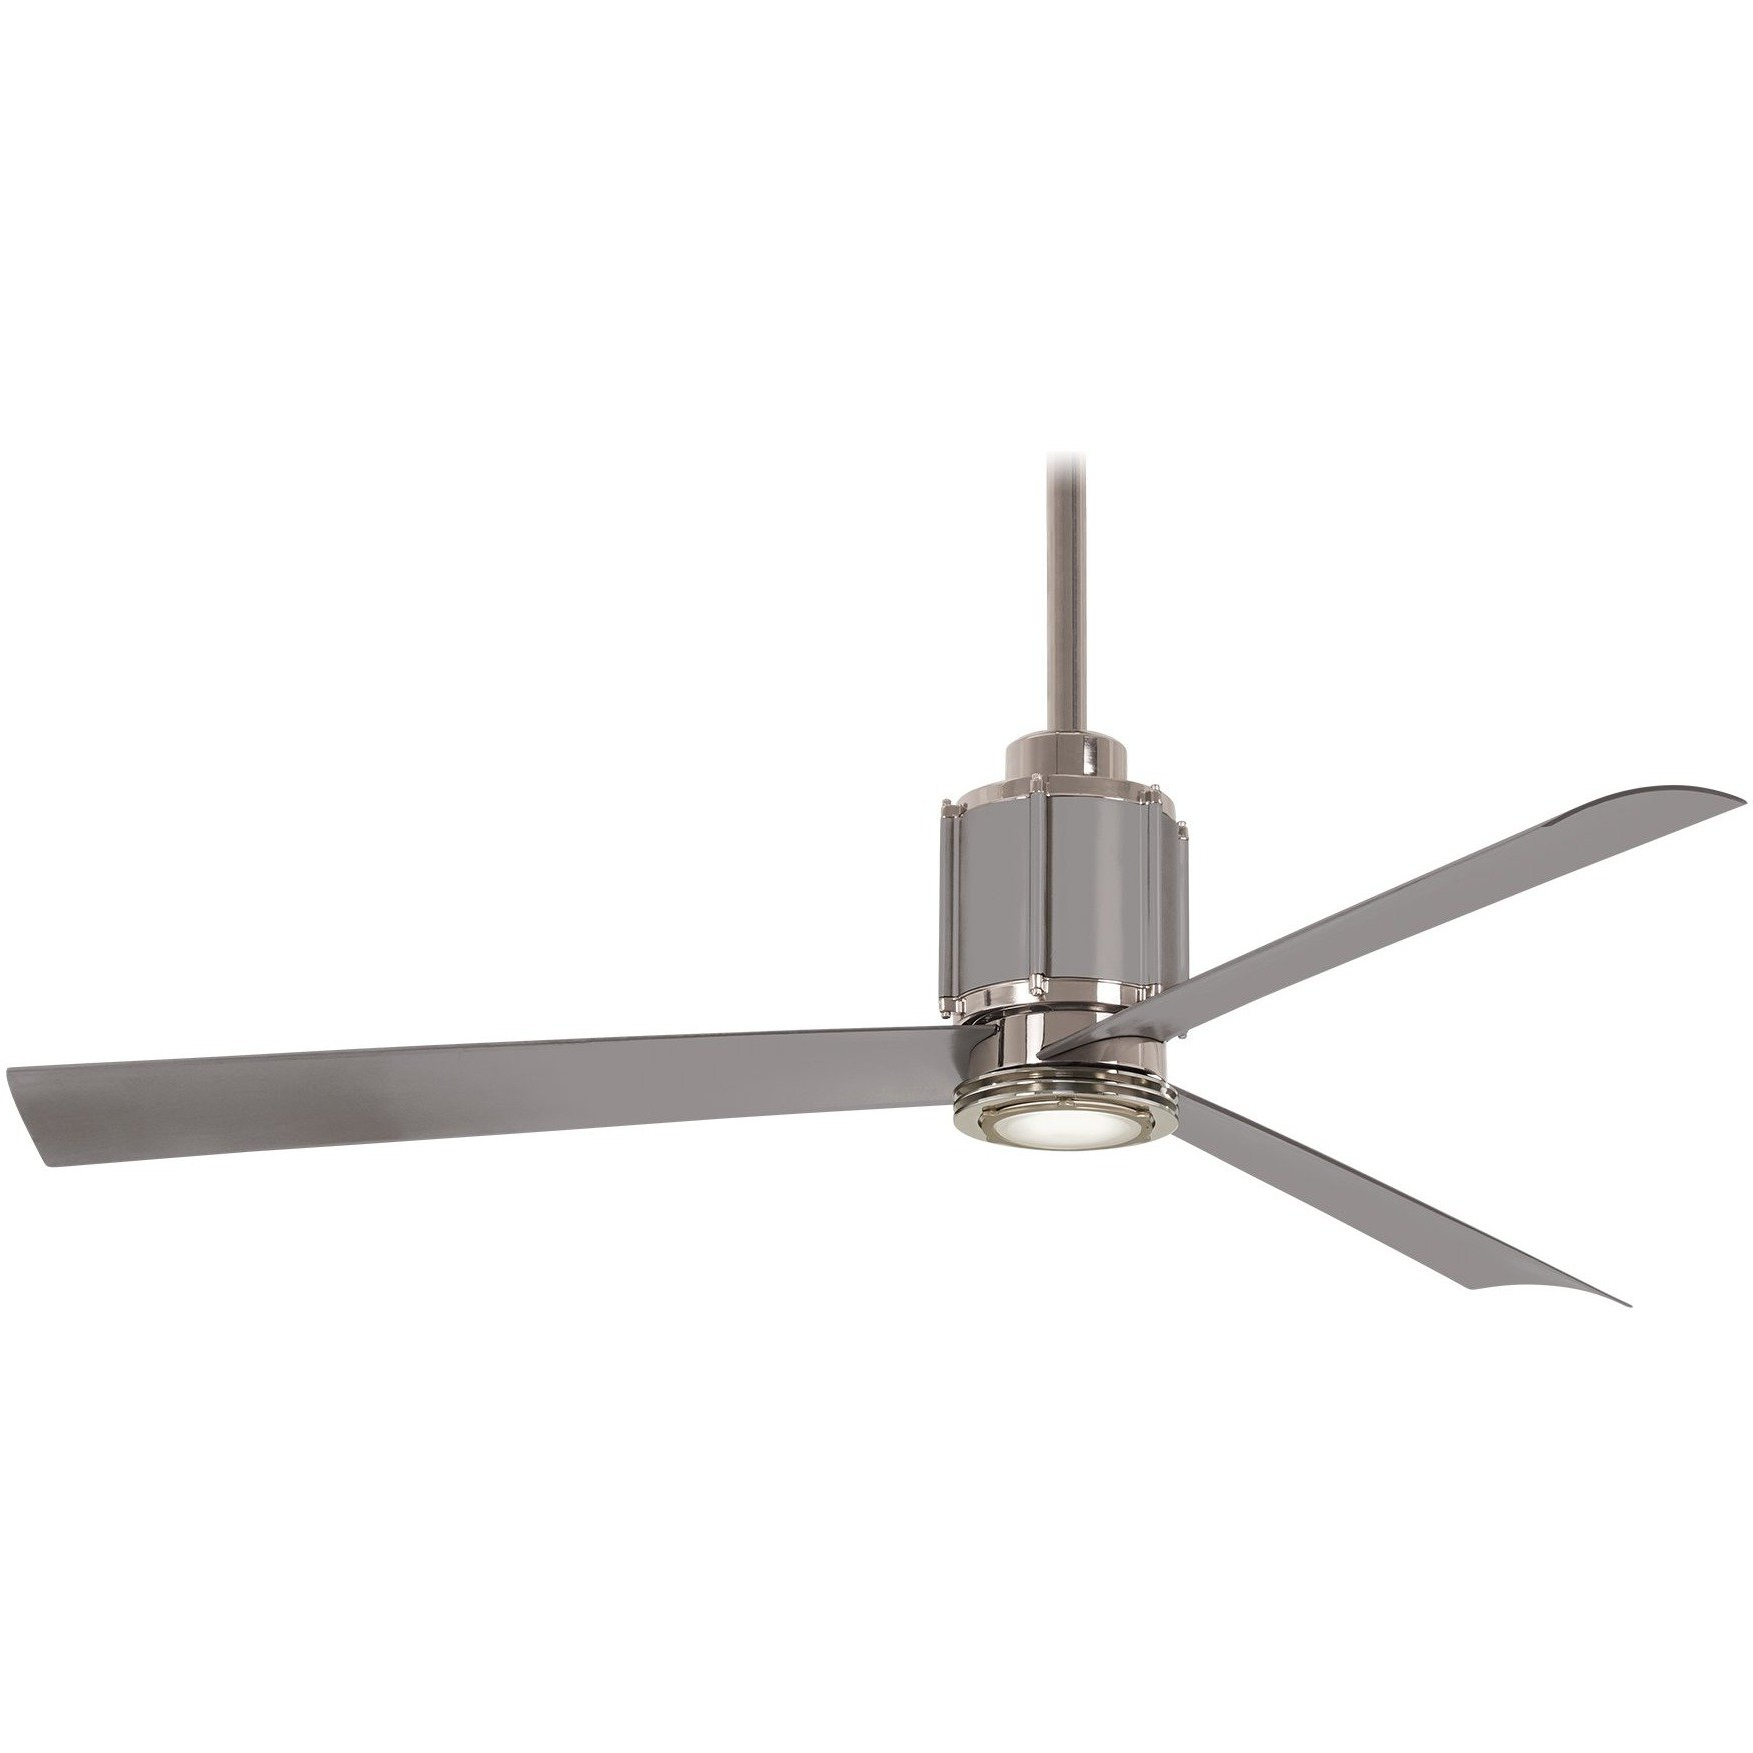 Popular Minka Aire F736L Pn/bs Gear Polished Nickel/brushed Steel 54 Within Theron Catoe 3 Blade Ceiling Fans (View 6 of 20)